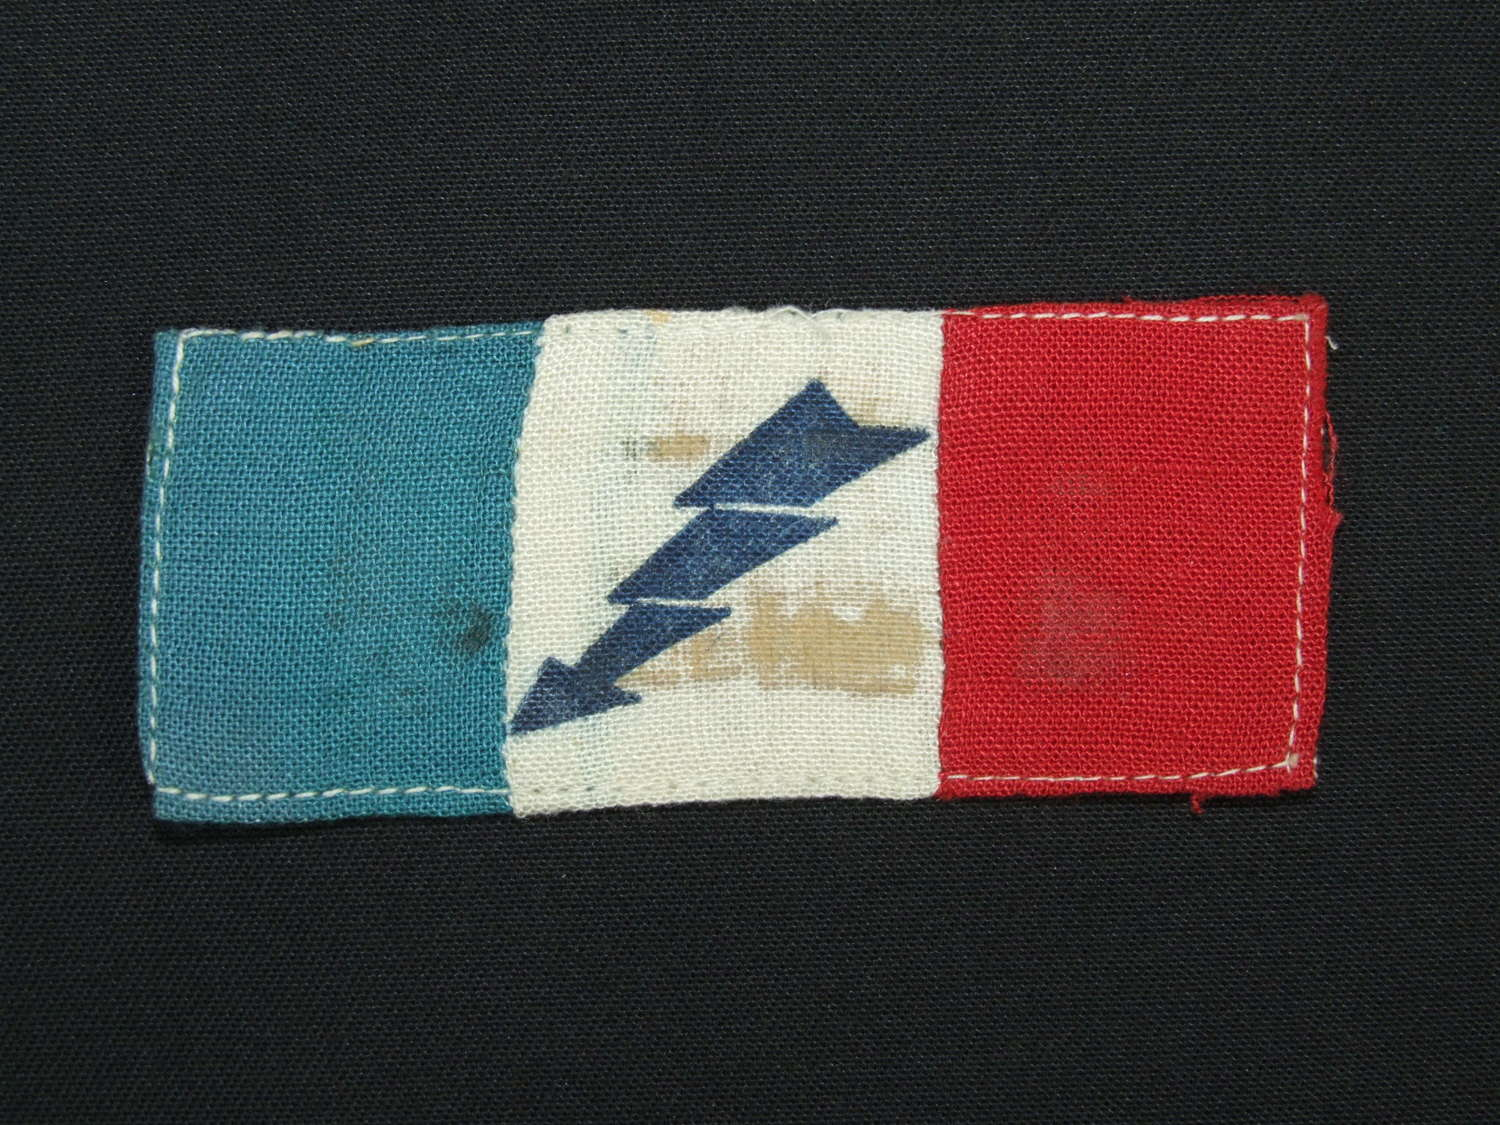 Italian Co-Belligerent Forces with Allies Arm Badge - Folgore